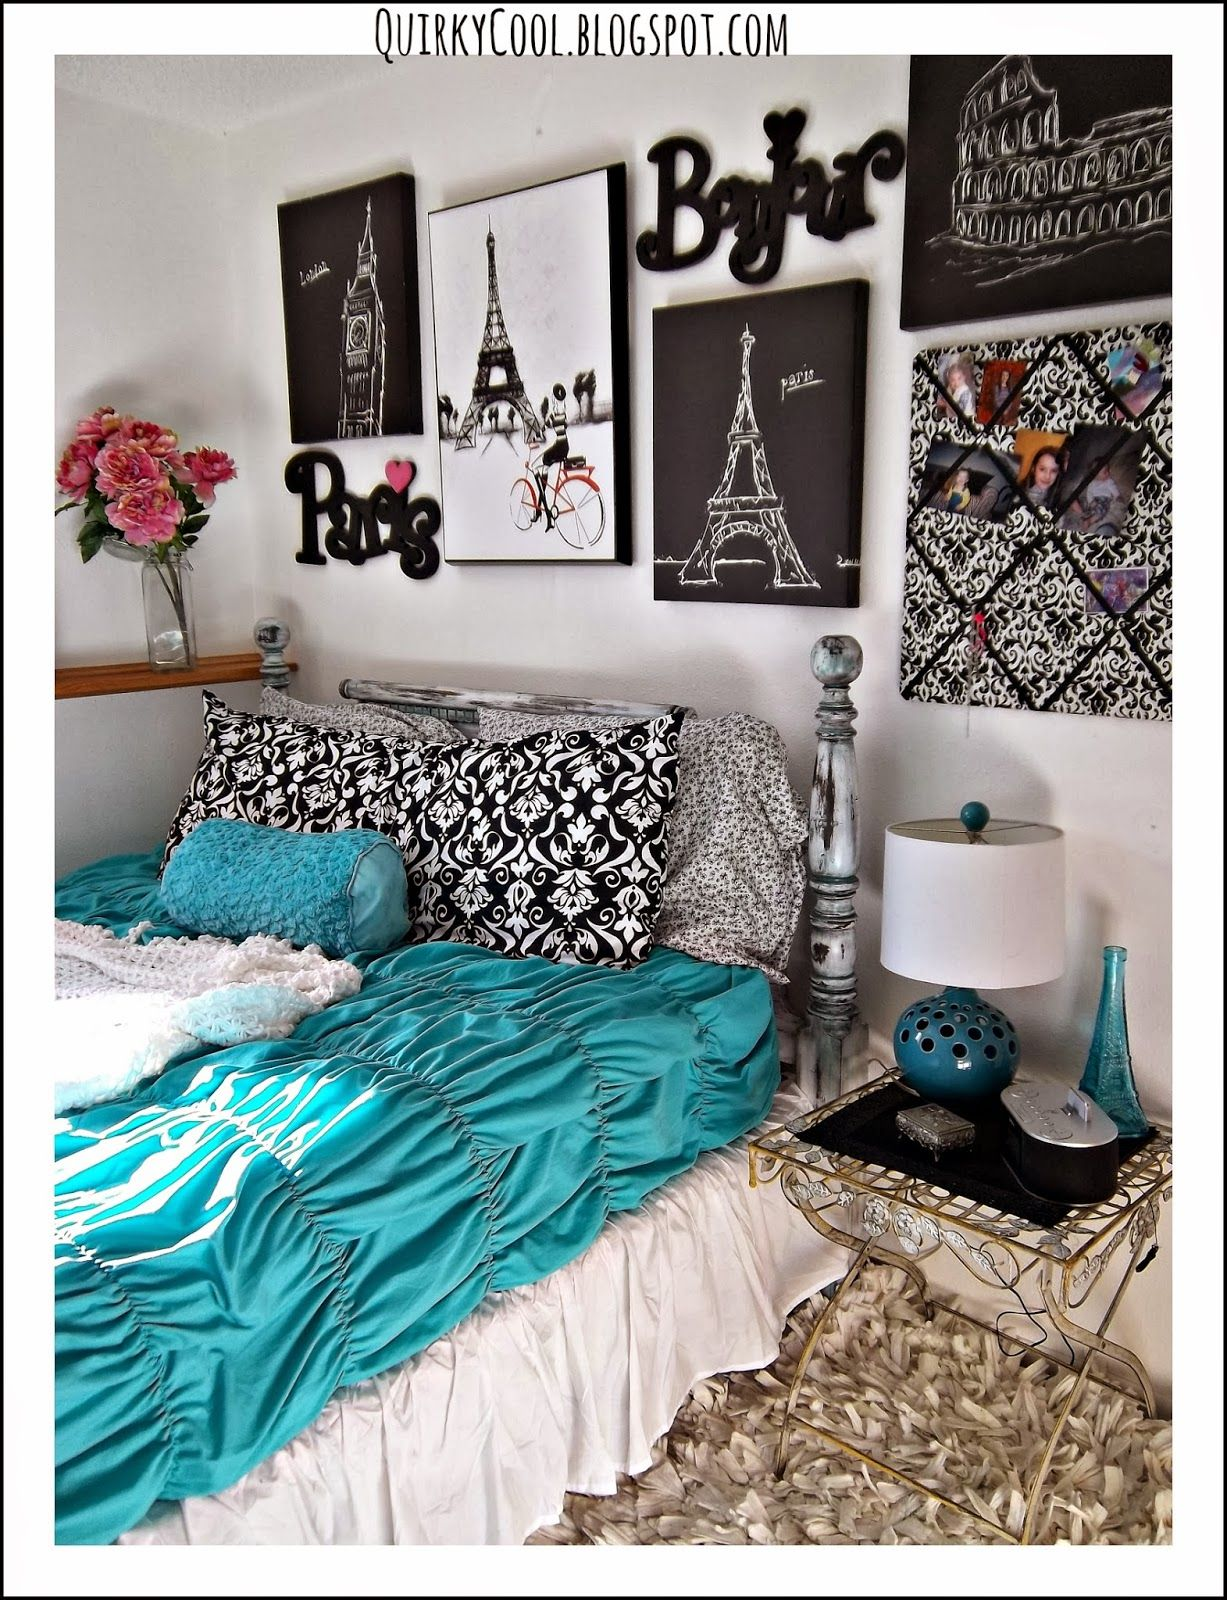 Quirky cool a parisian chic room that diy party for Quirky bedroom items